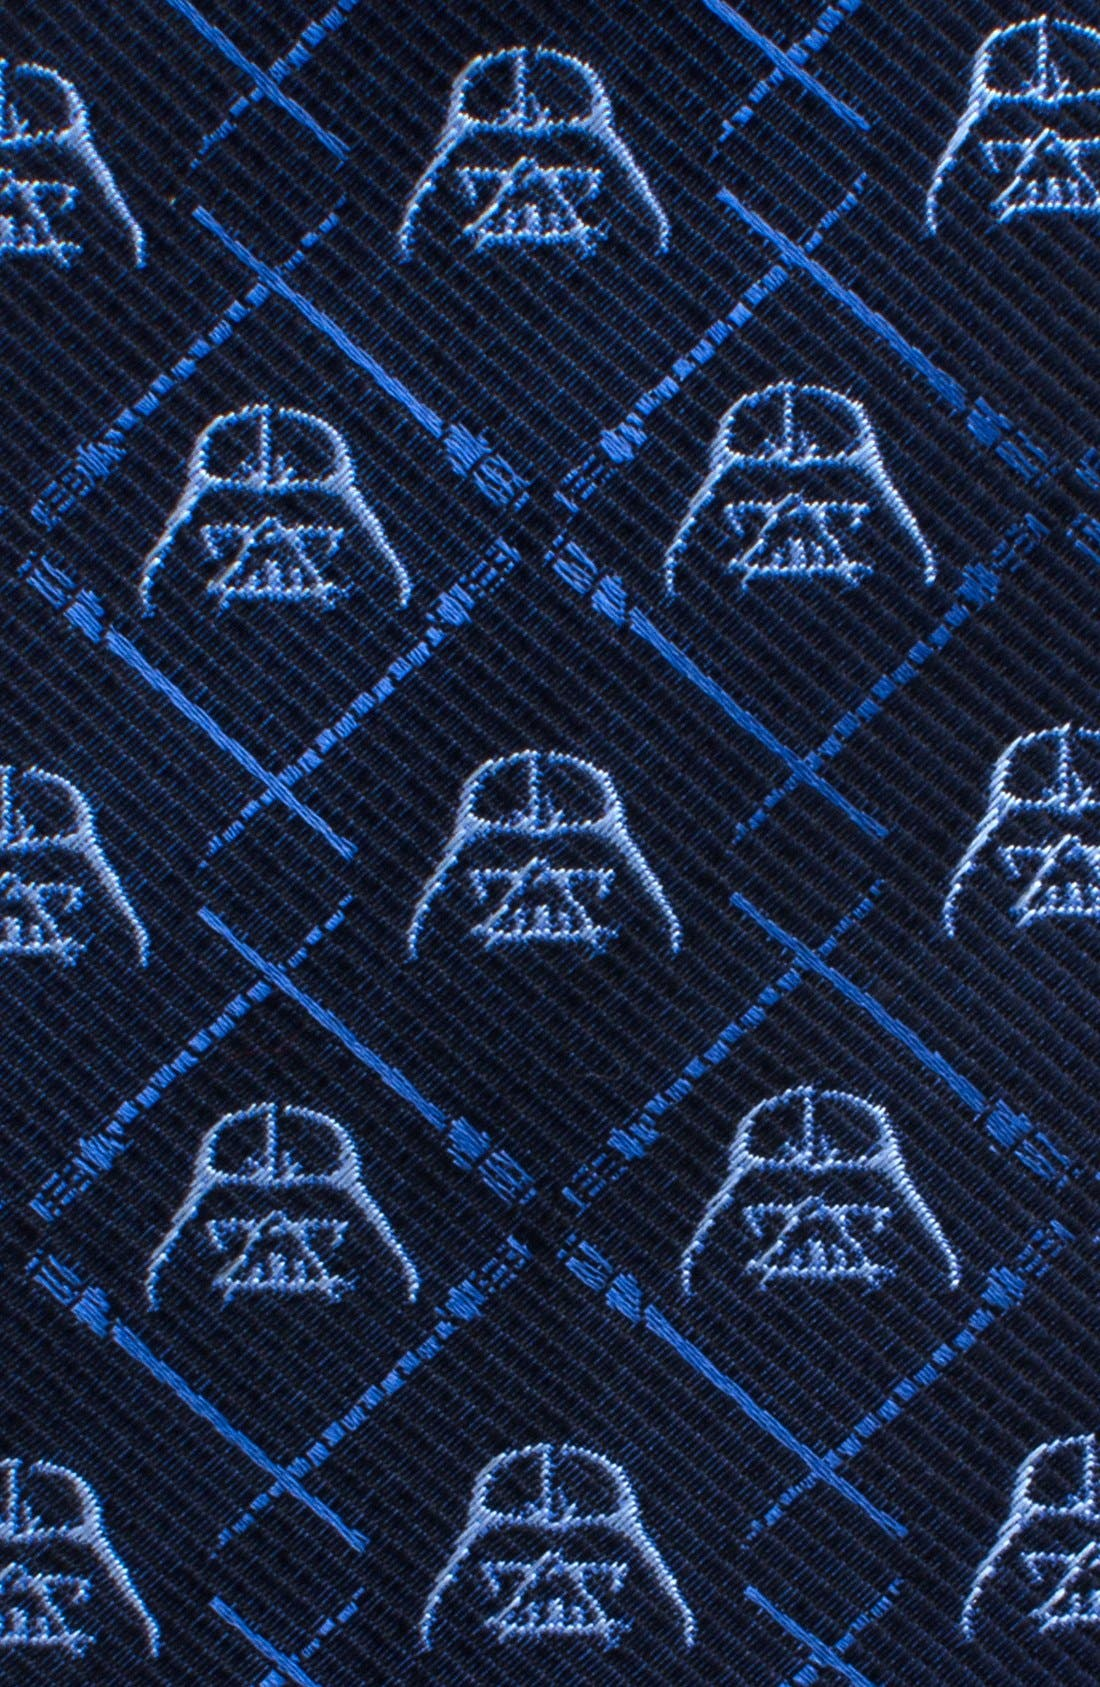 'Darth Vader' Silk Tie,                             Alternate thumbnail 2, color,                             BLUE